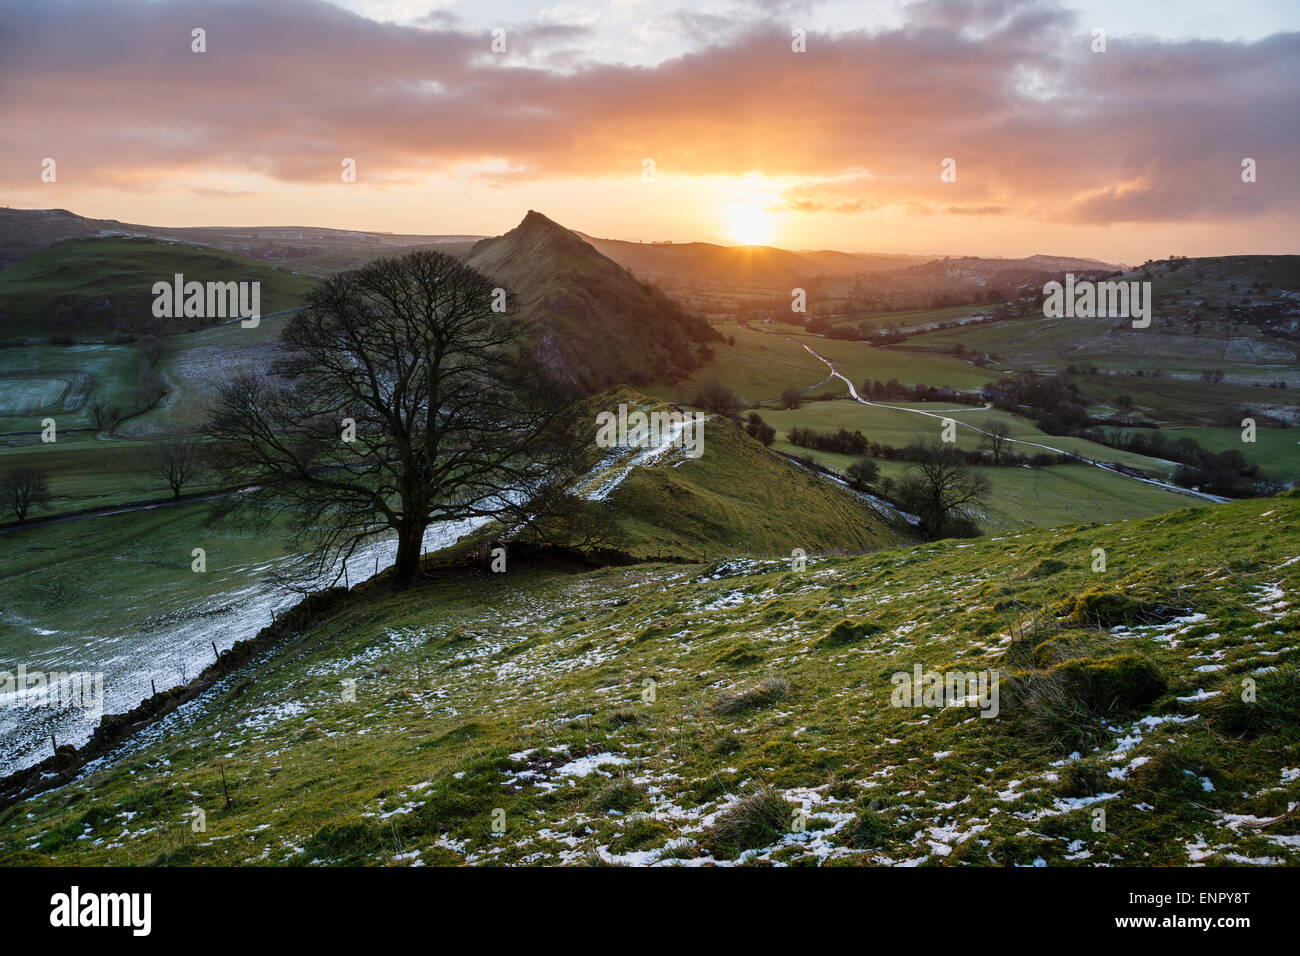 Parkhouse Hill and the upper Dove Valley from Chrome Hill, Peak District National Park, Derbyshire, England - Stock Image